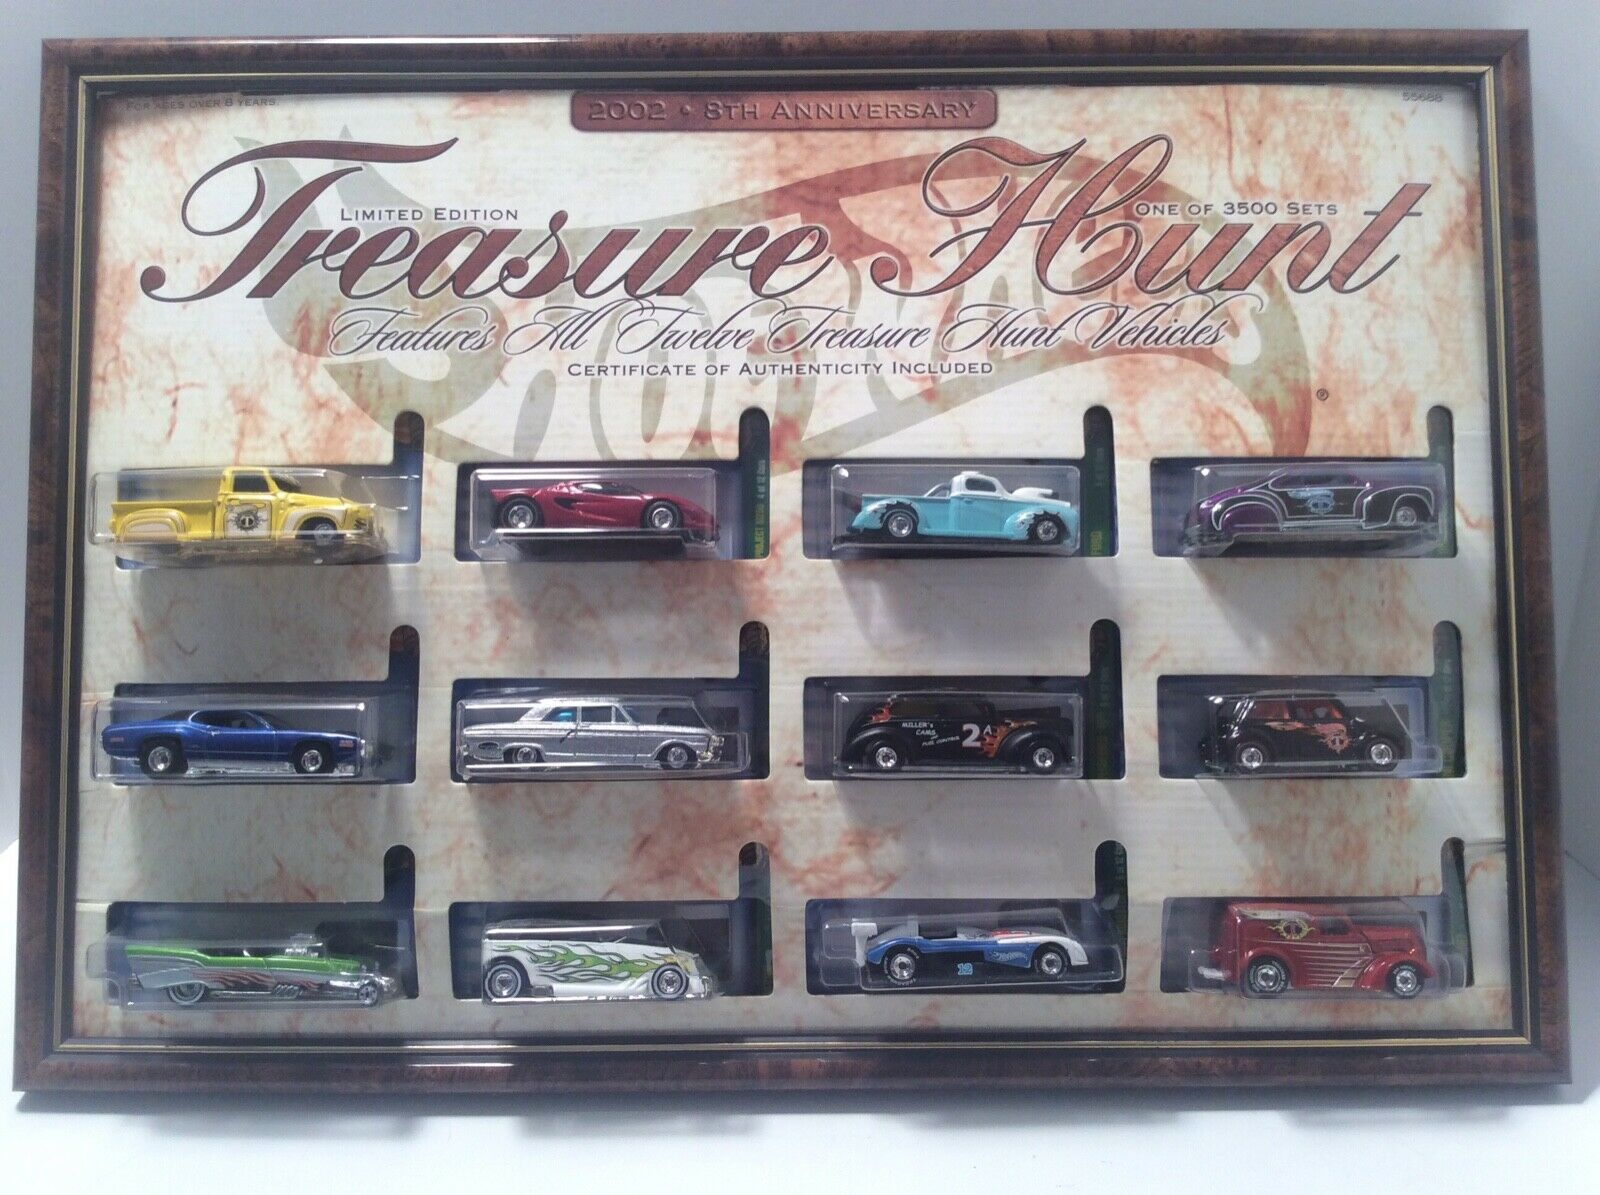 Hot Wheel Treasure Hunt 2002 8th Anniversary Limited Edition Set  1 of 3,500